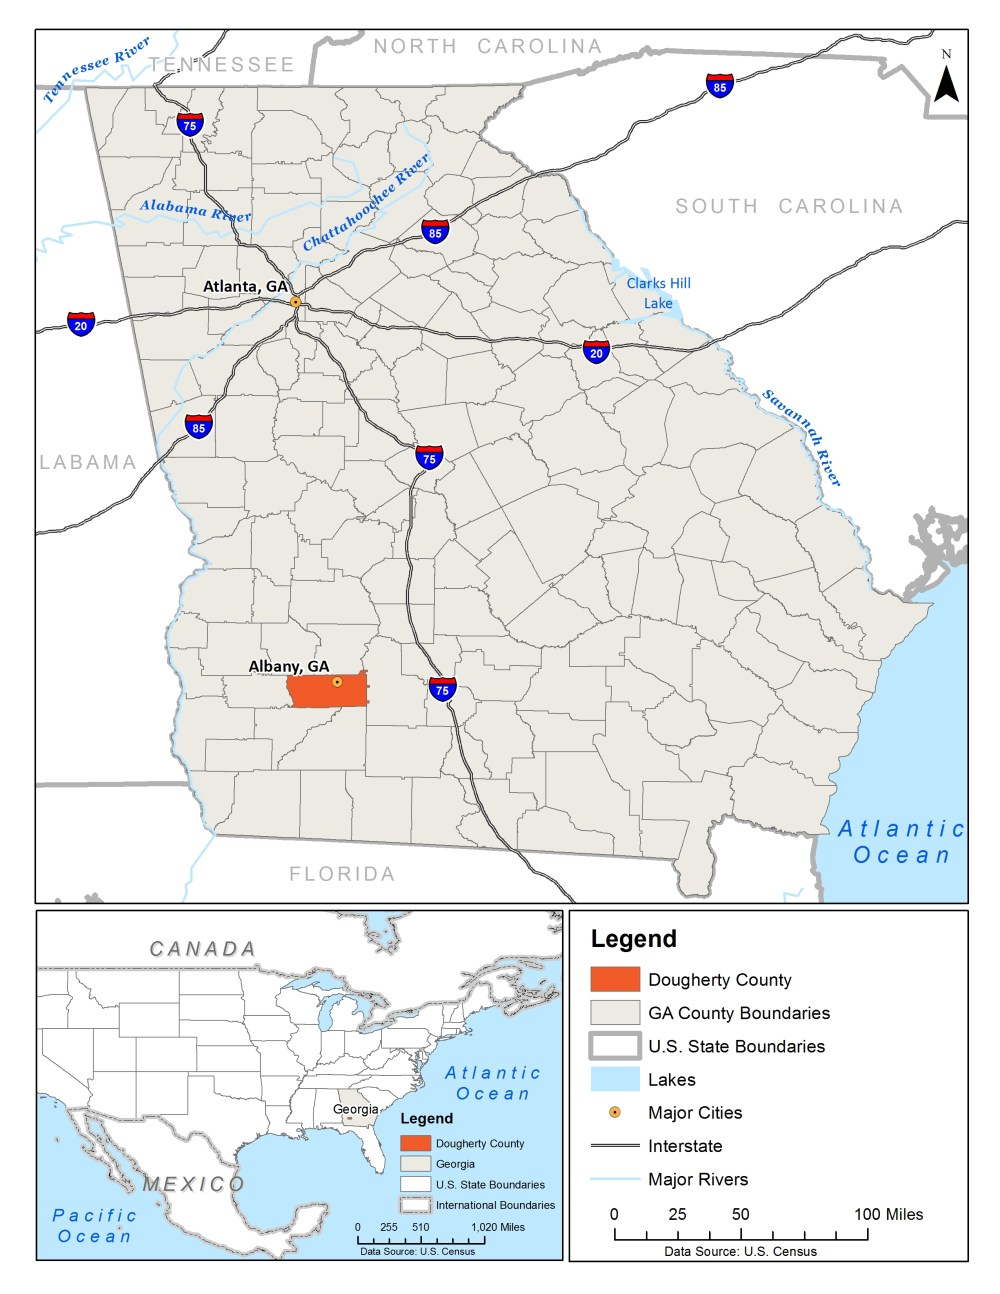 medium resolution of dougherty county is located in southwest georgia image source ub food systems planning and healthy communities lab